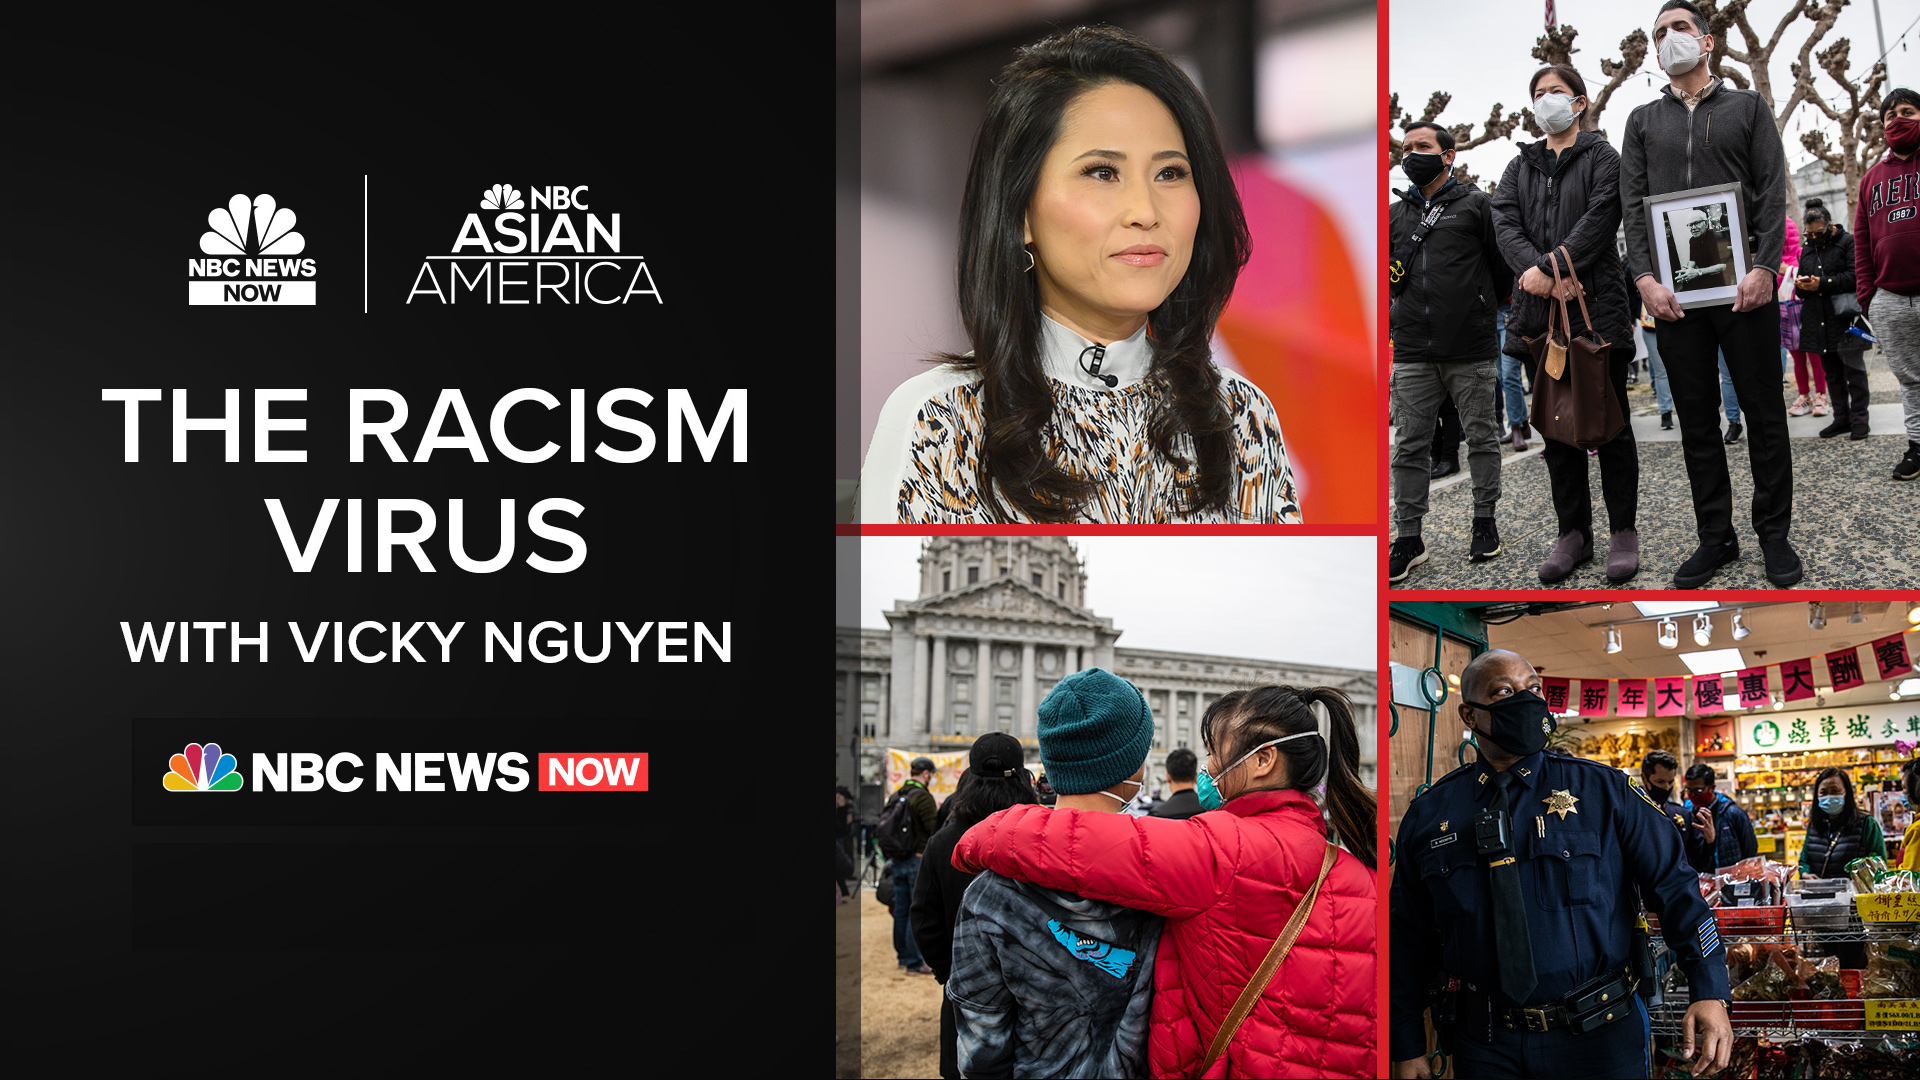 ICYMI: Highlights from NBC News NOW's The Racism Virus